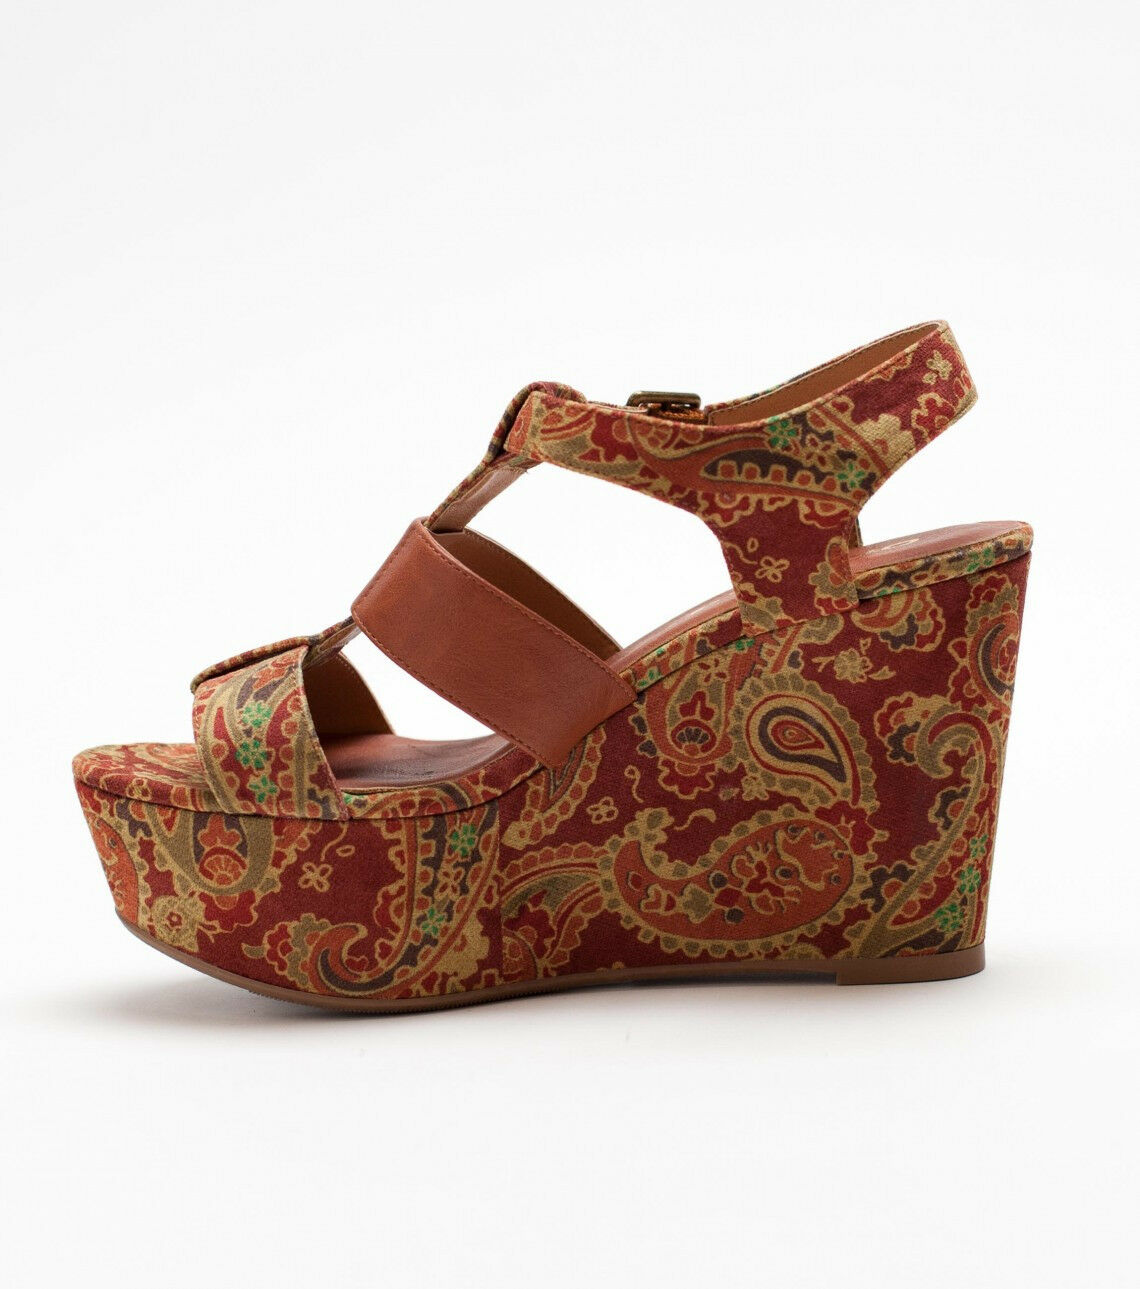 O'Neill O'Neill O'Neill Damenschuhe Kindra Platform Wedge Sandales 7 Medium Rust Braun Paisleys NEW 1298ef